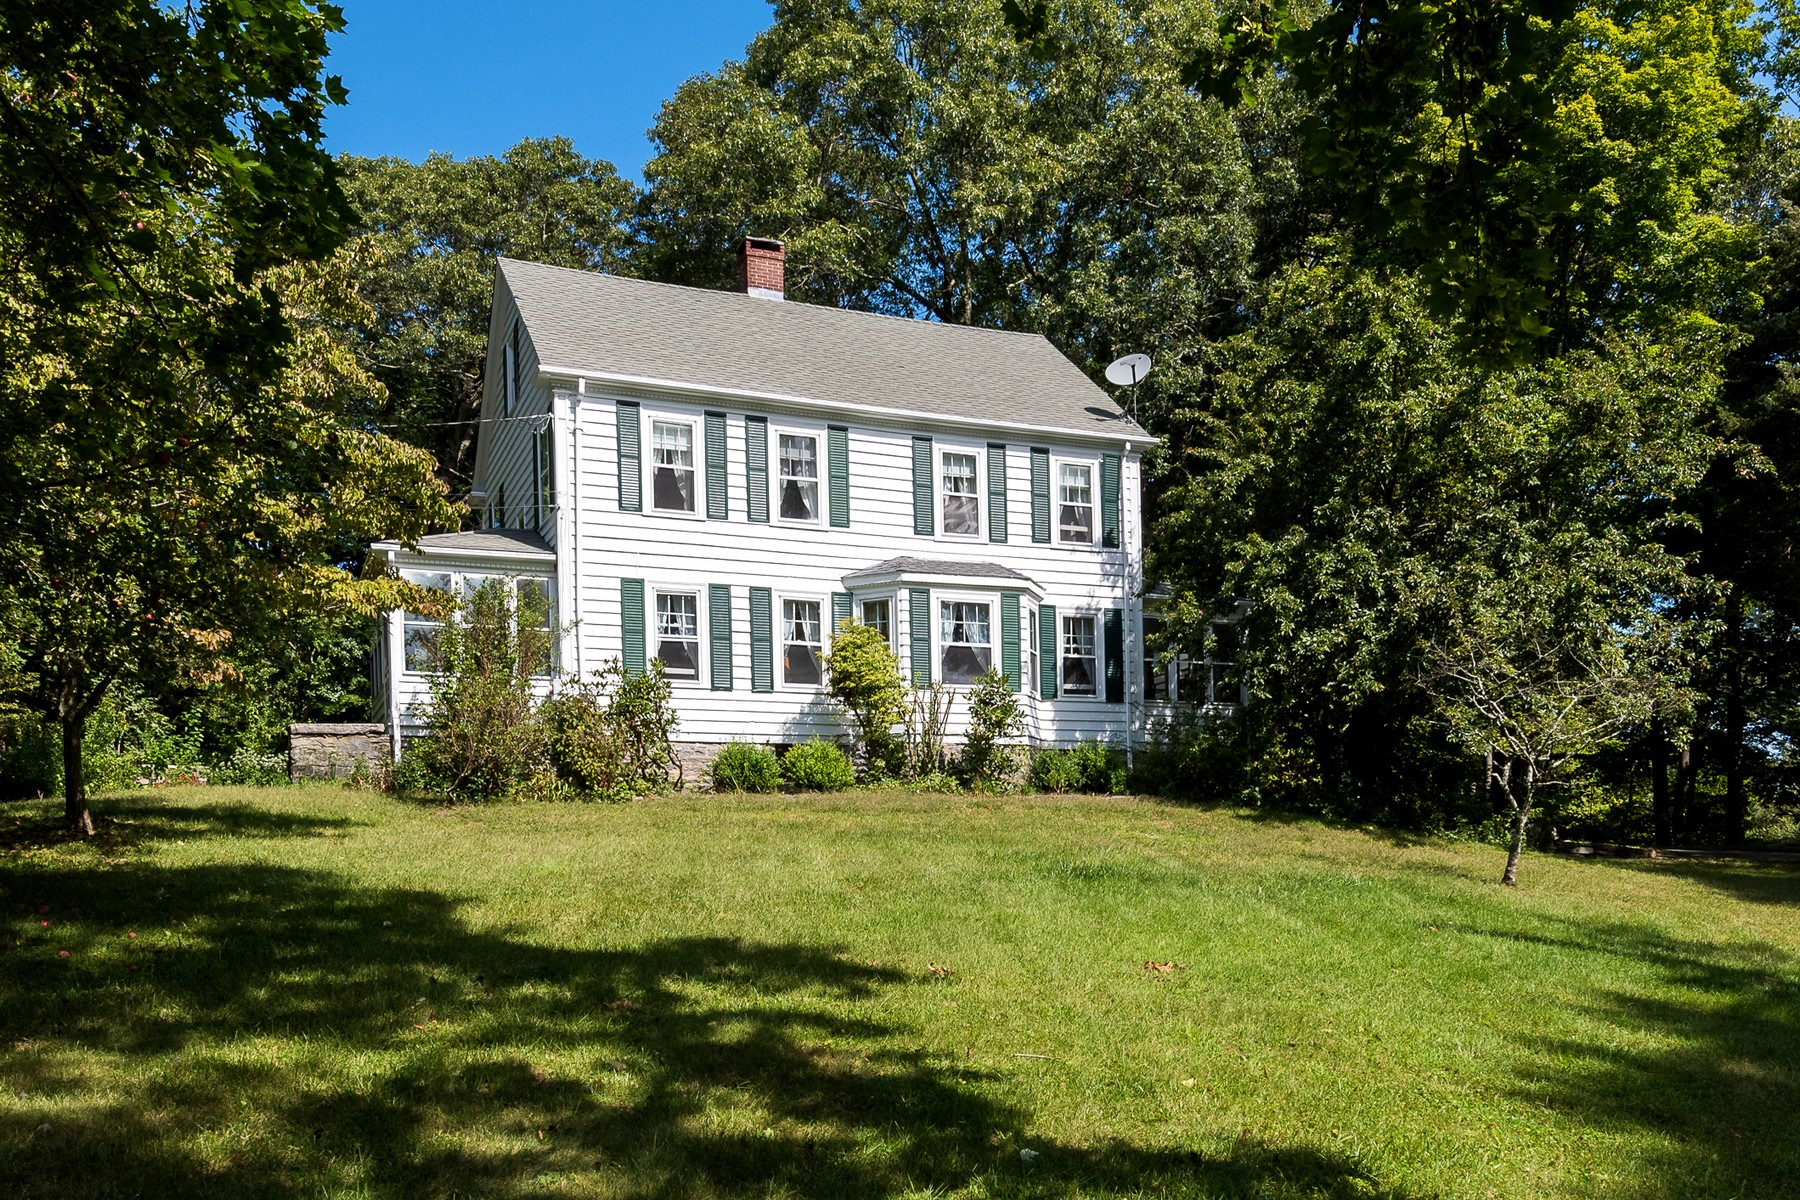 Single Family Home for Sale at Great Location 69 Essex Street Deep River, Connecticut 06417 United States